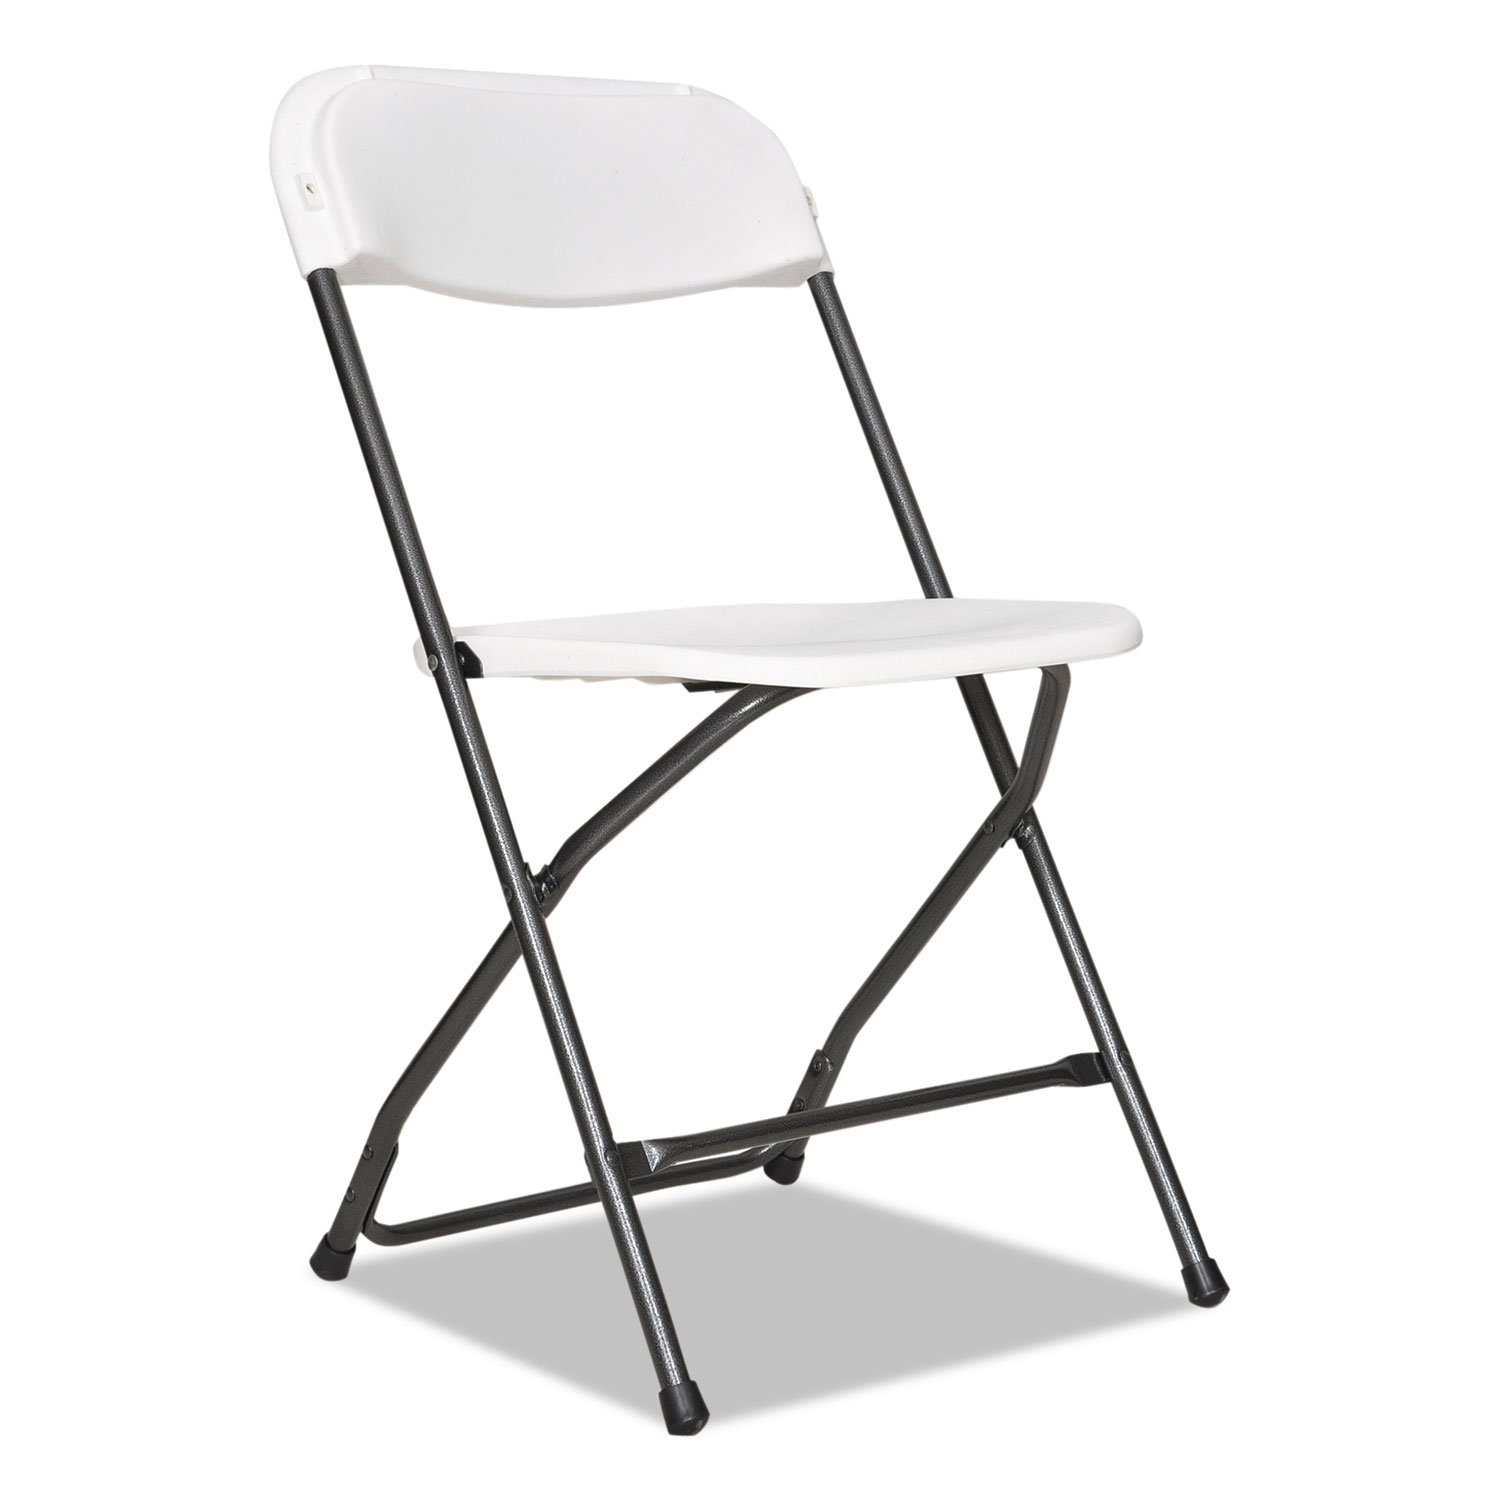 Economy Resin Folding Chair by Alera ALEFR9502 TimeSupplies